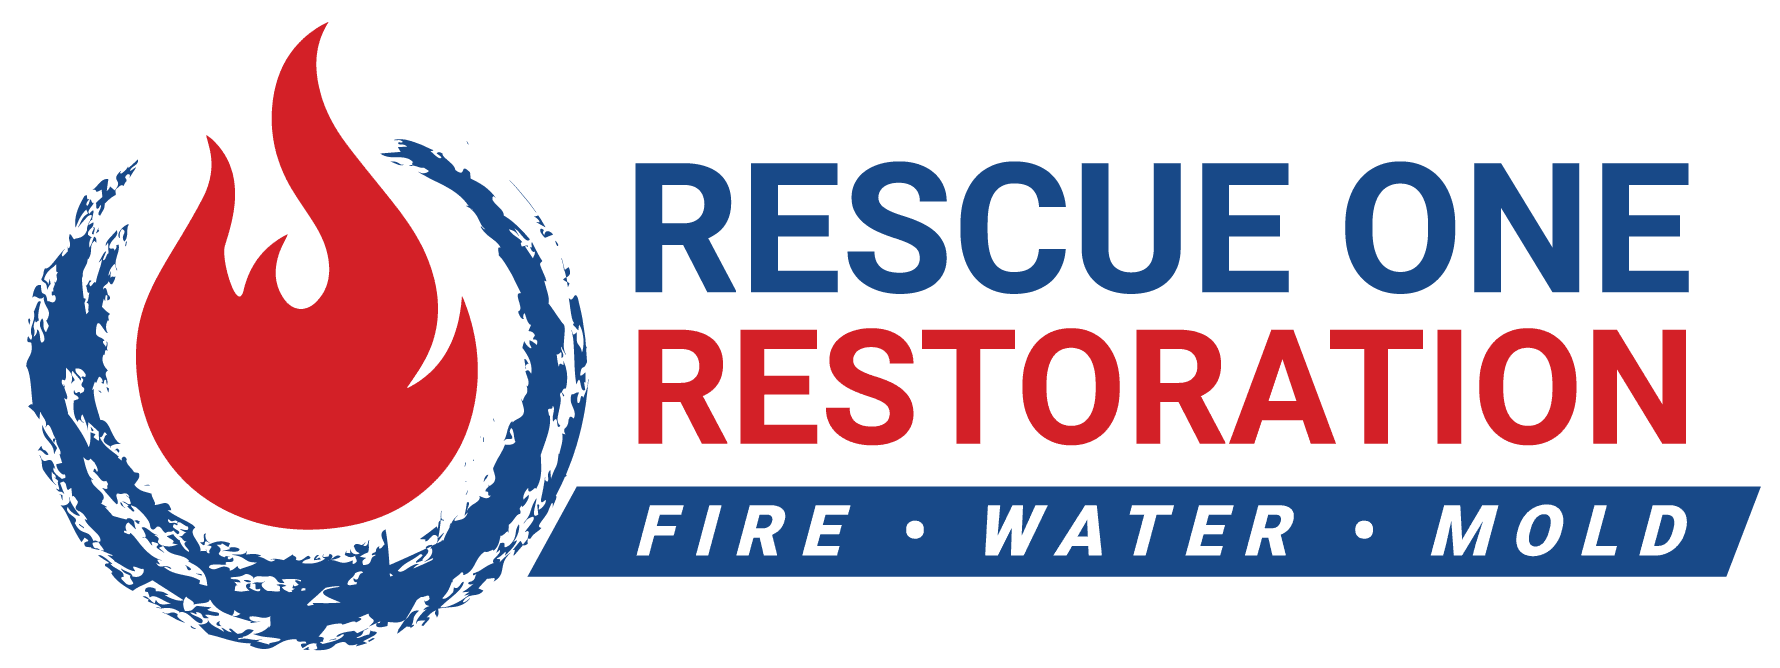 Rescue One Restoration (Logo)